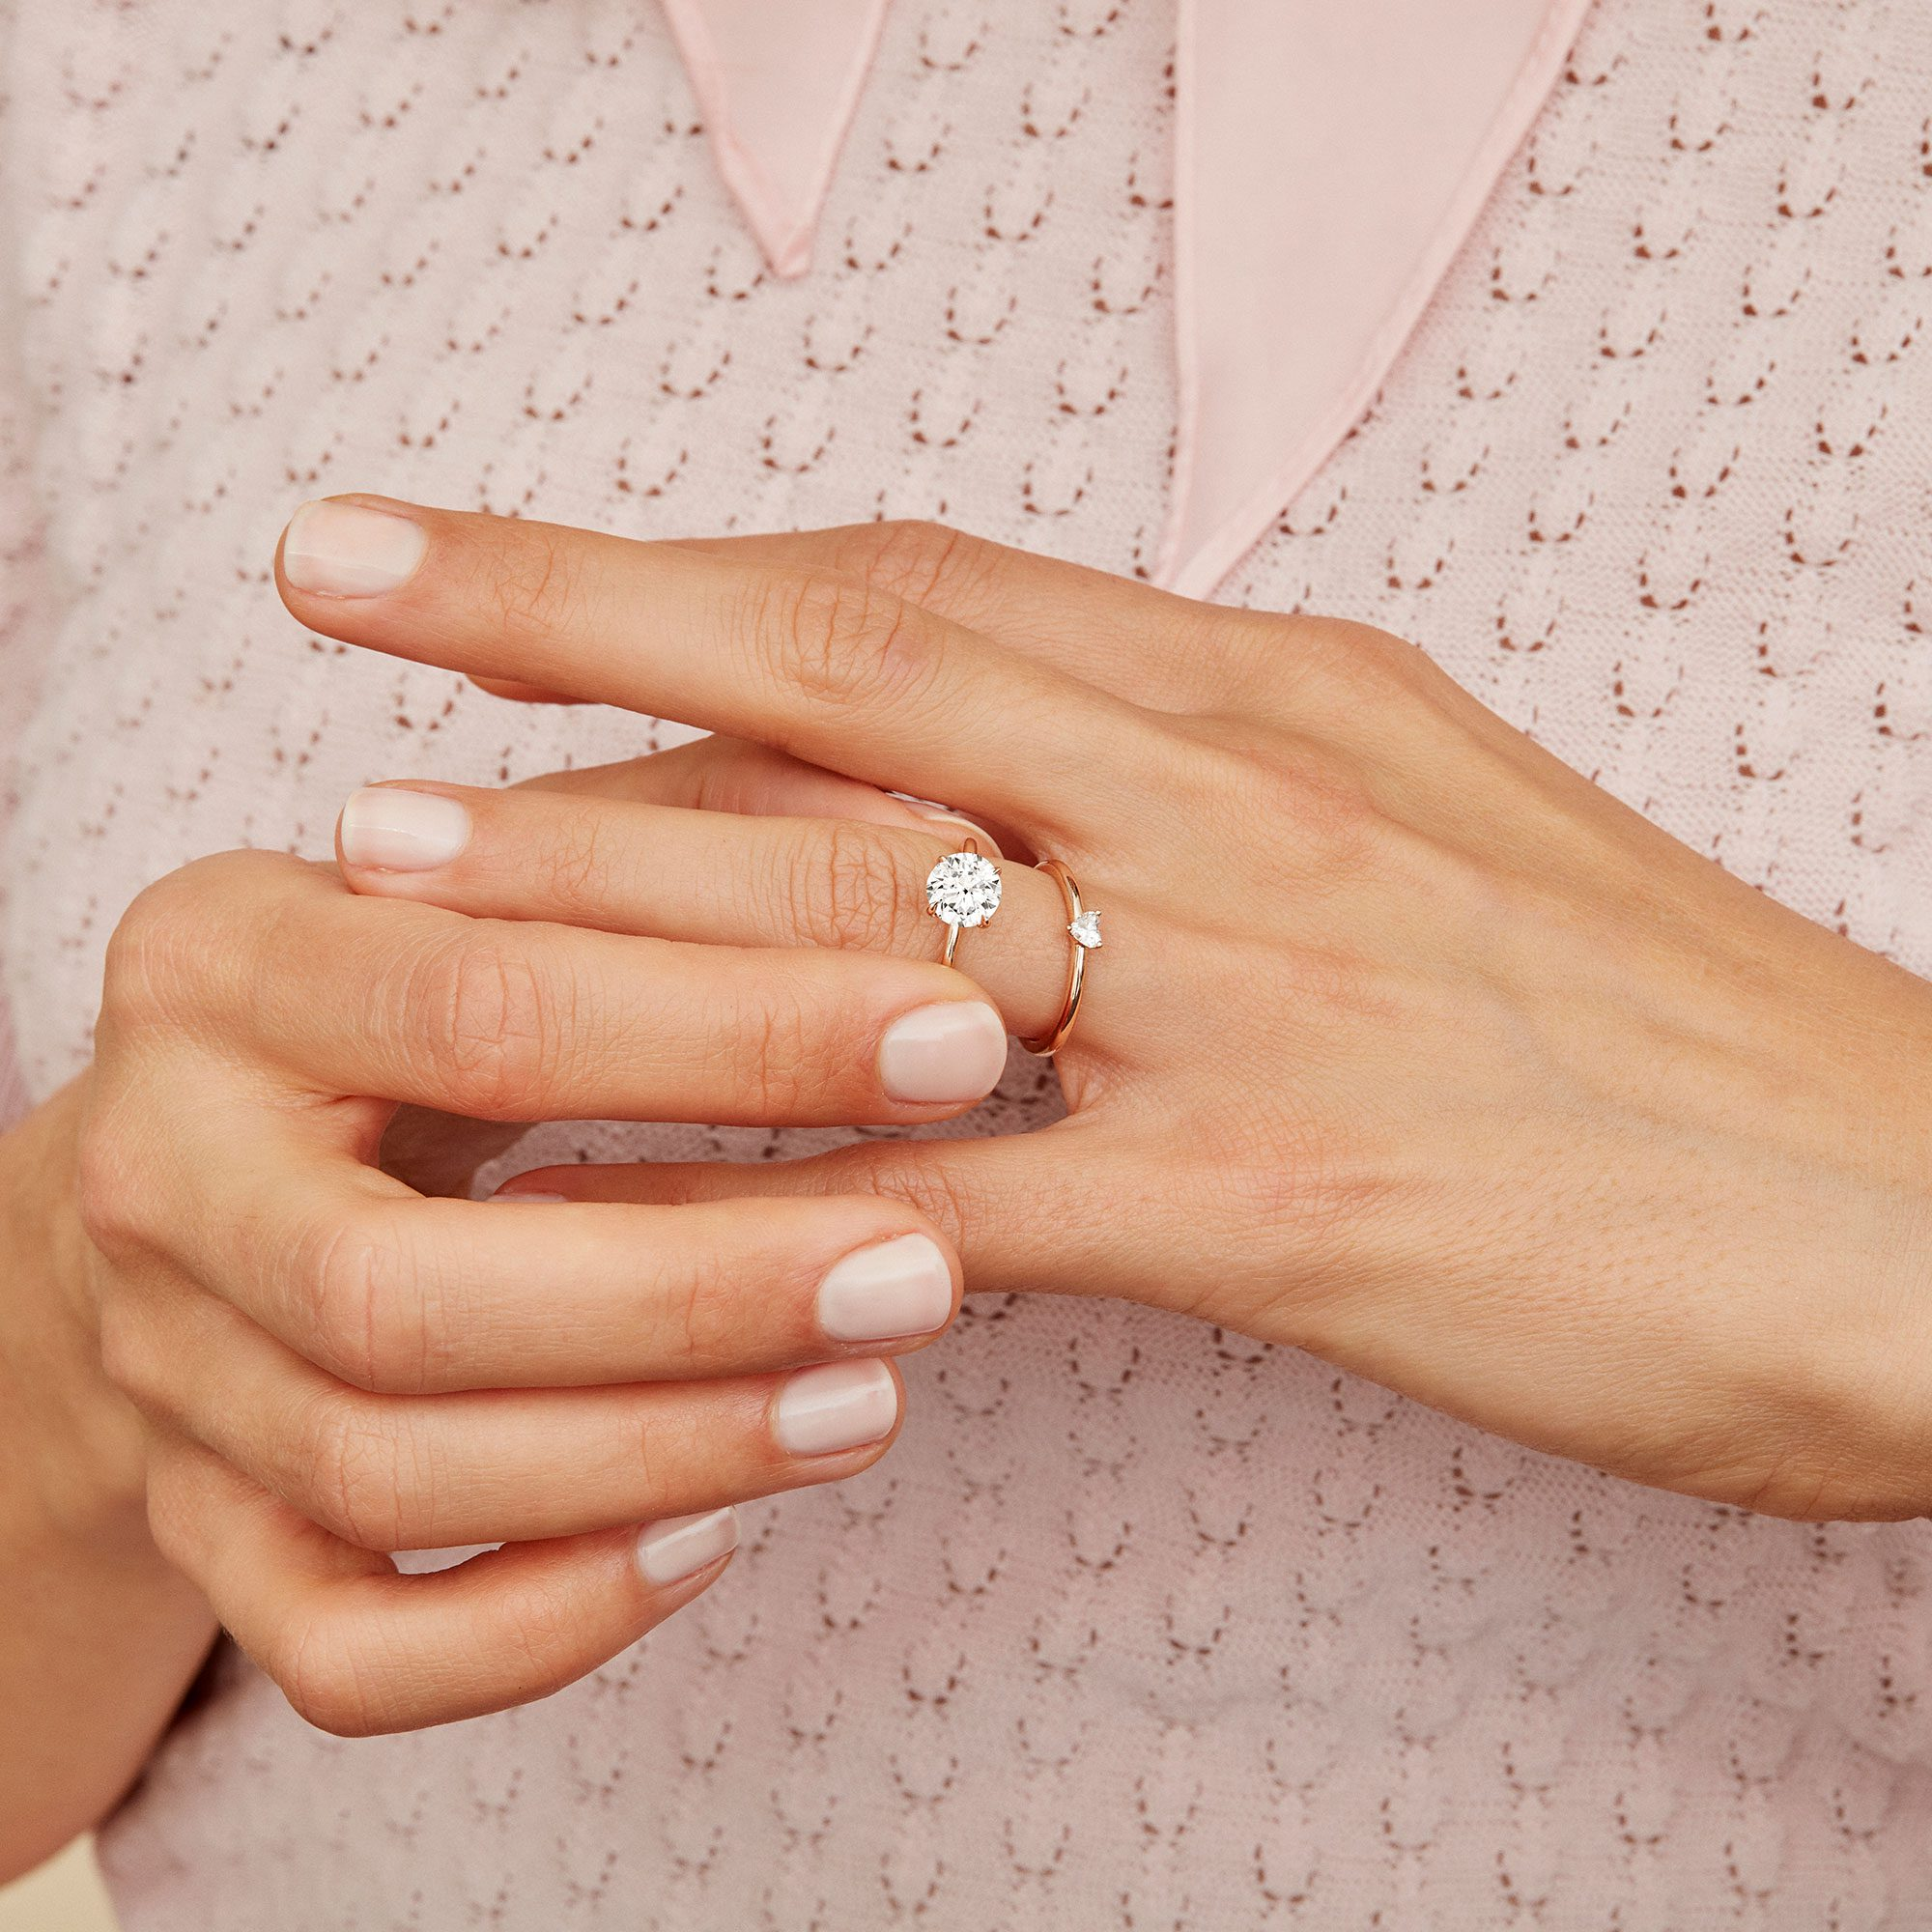 Perfect Duo Lab Grown Diamond Engagement Ring Wedding Ring Set on Hand from Oui by Jean Dousset